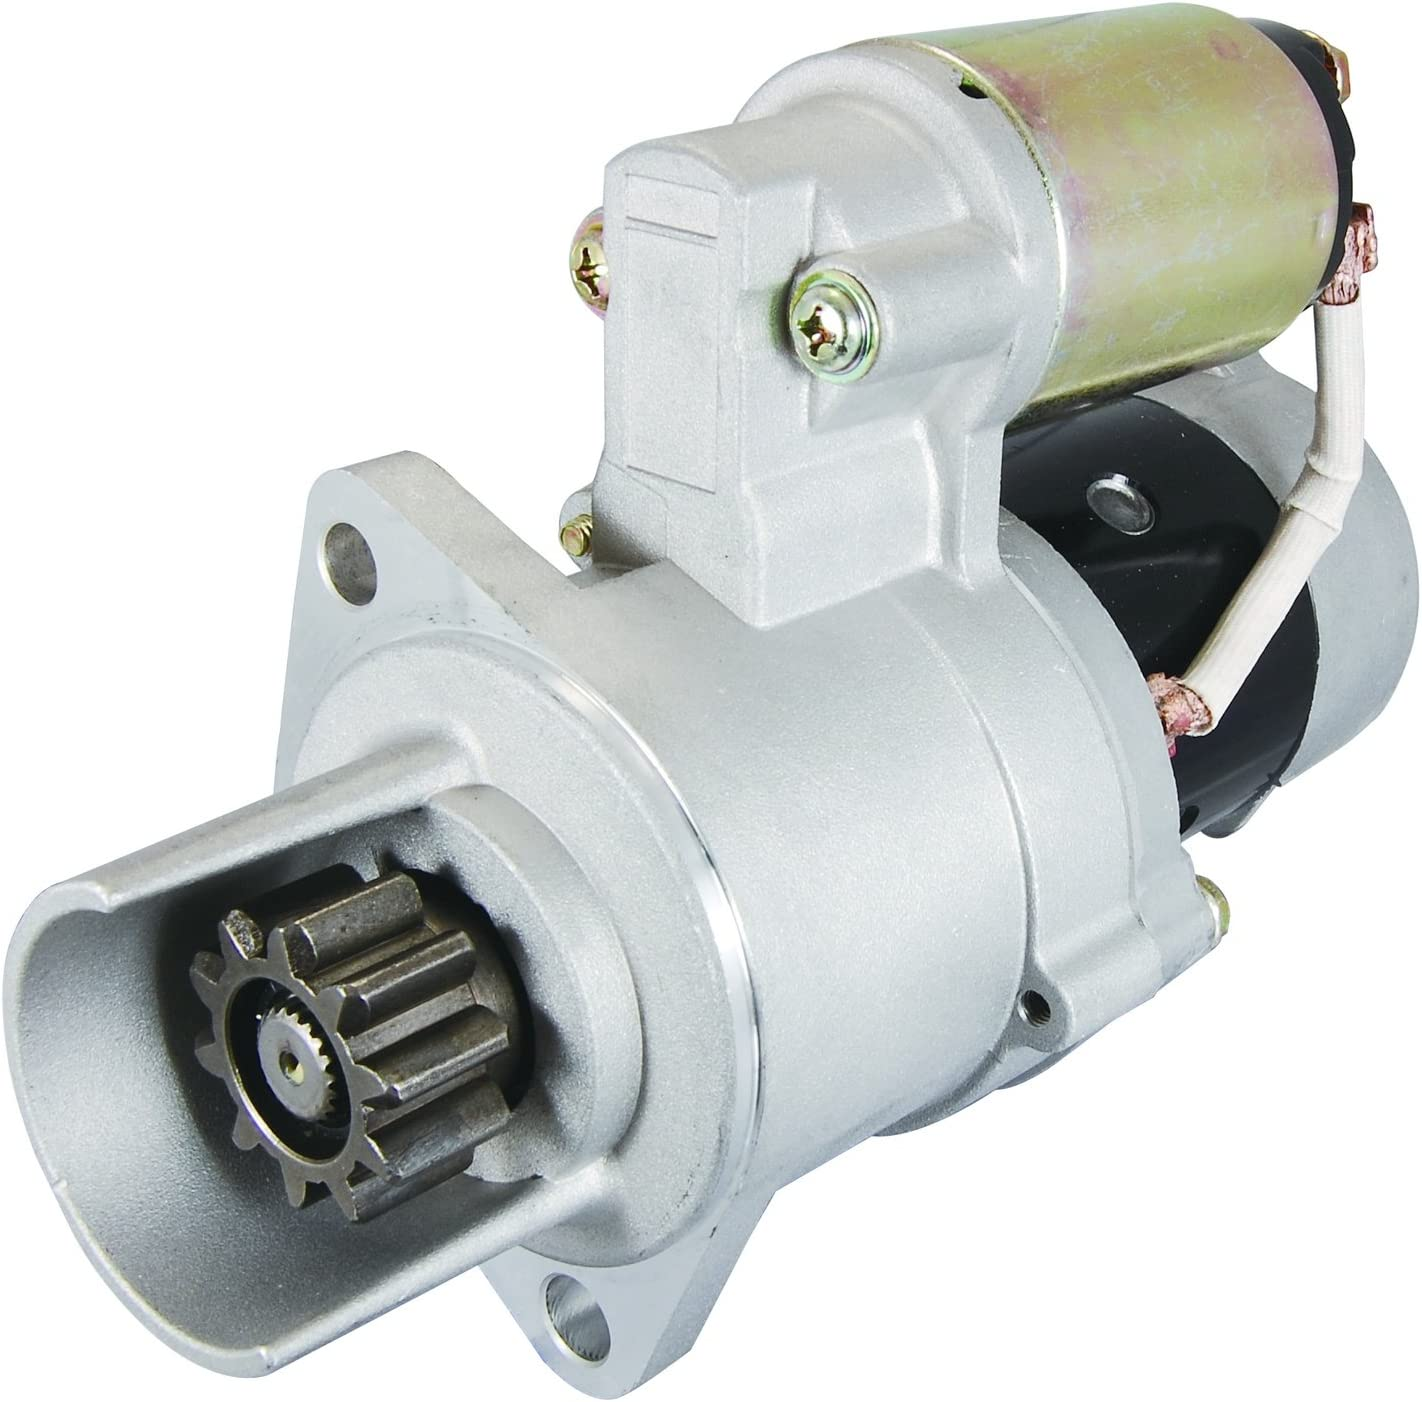 New Starter for Onan Industrial Engine B43M B48M /& More